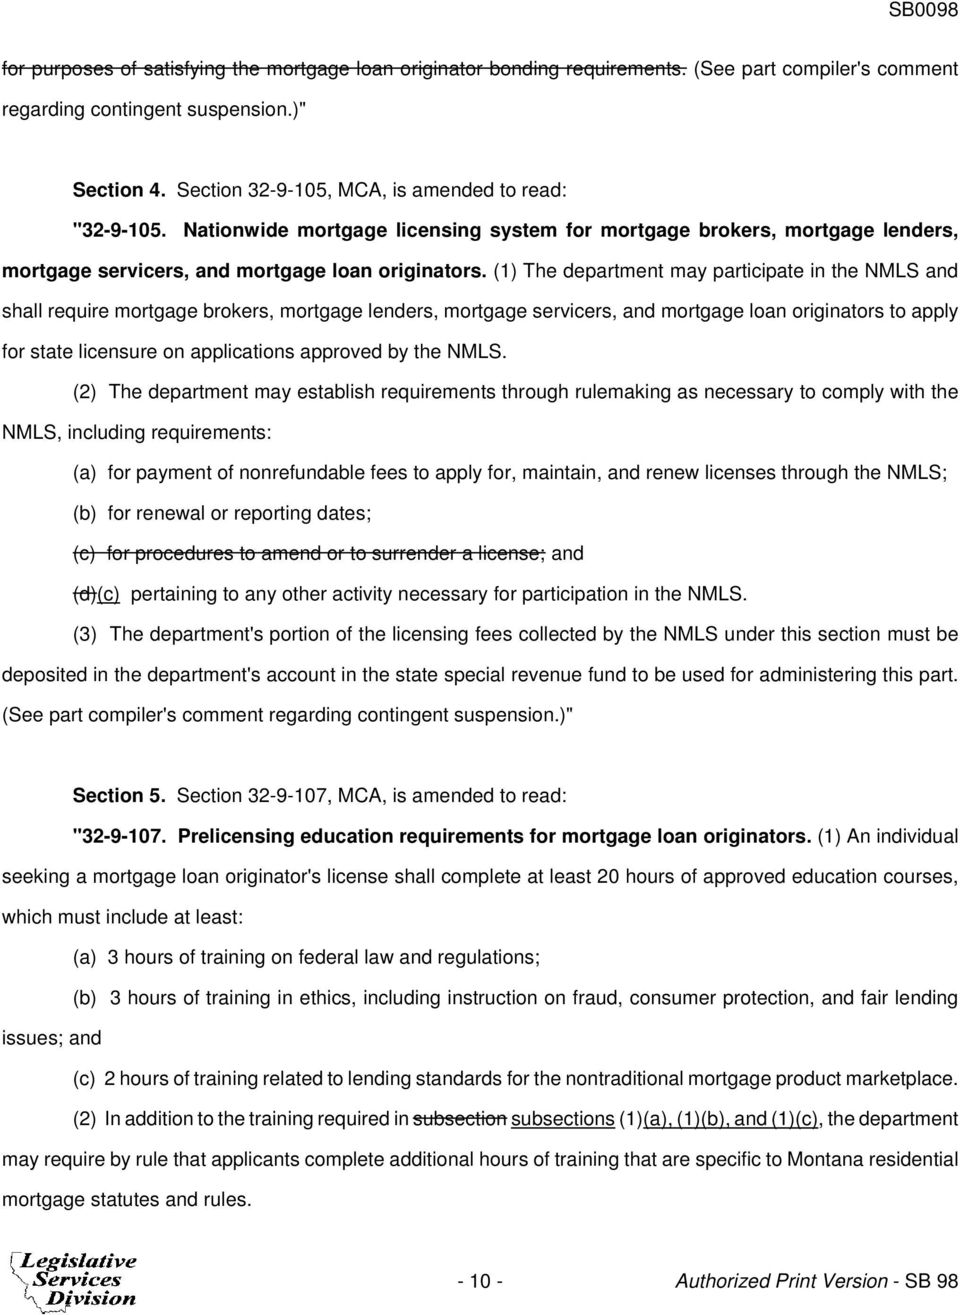 (1) The department may participate in the NMLS and shall require mortgage brokers, mortgage lenders, mortgage servicers, and mortgage loan originators to apply for state licensure on applications